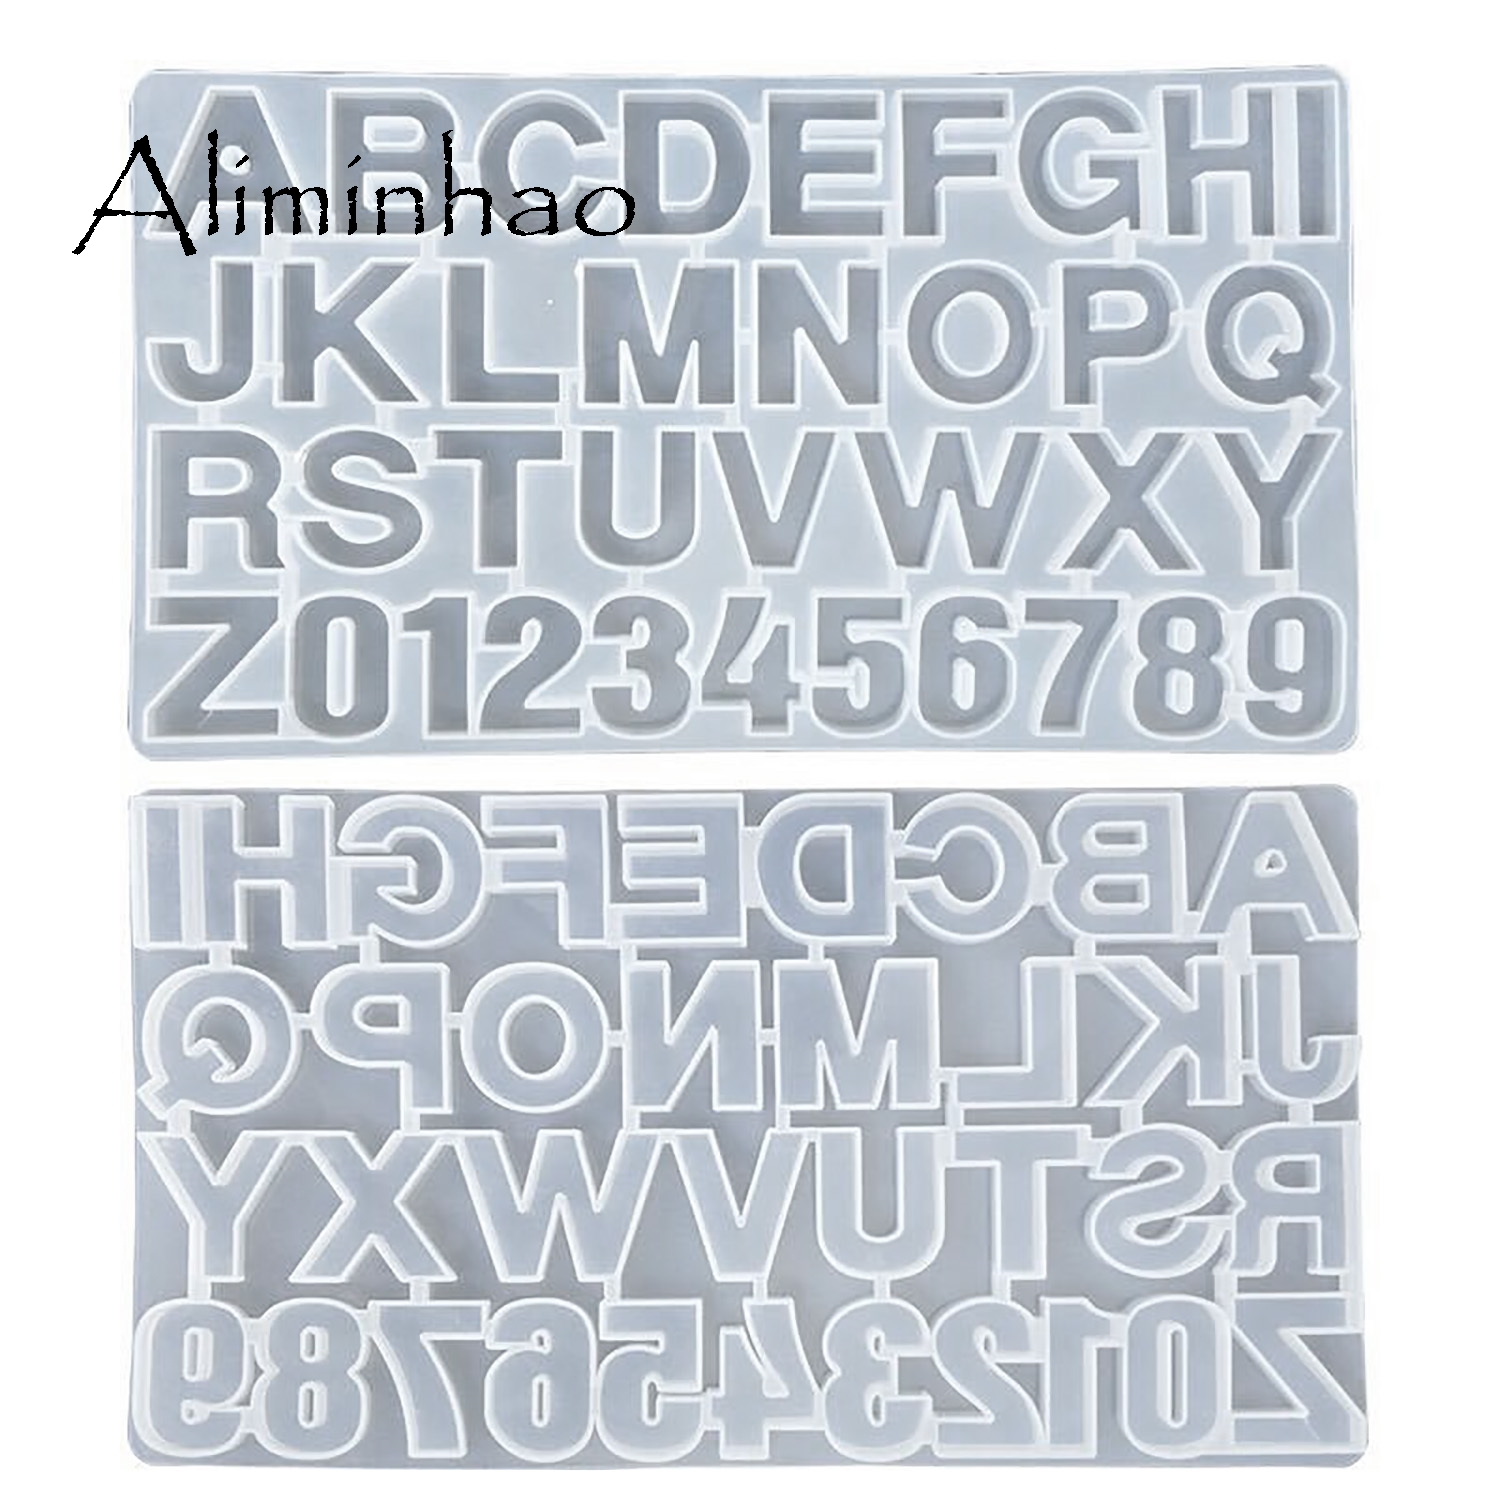 M001 Letter Mold Alphabet & Number Silicone Molds Initial Mold Large Clear Resin Mold Epoxy Resin Craft Supplies (36 Cavity)